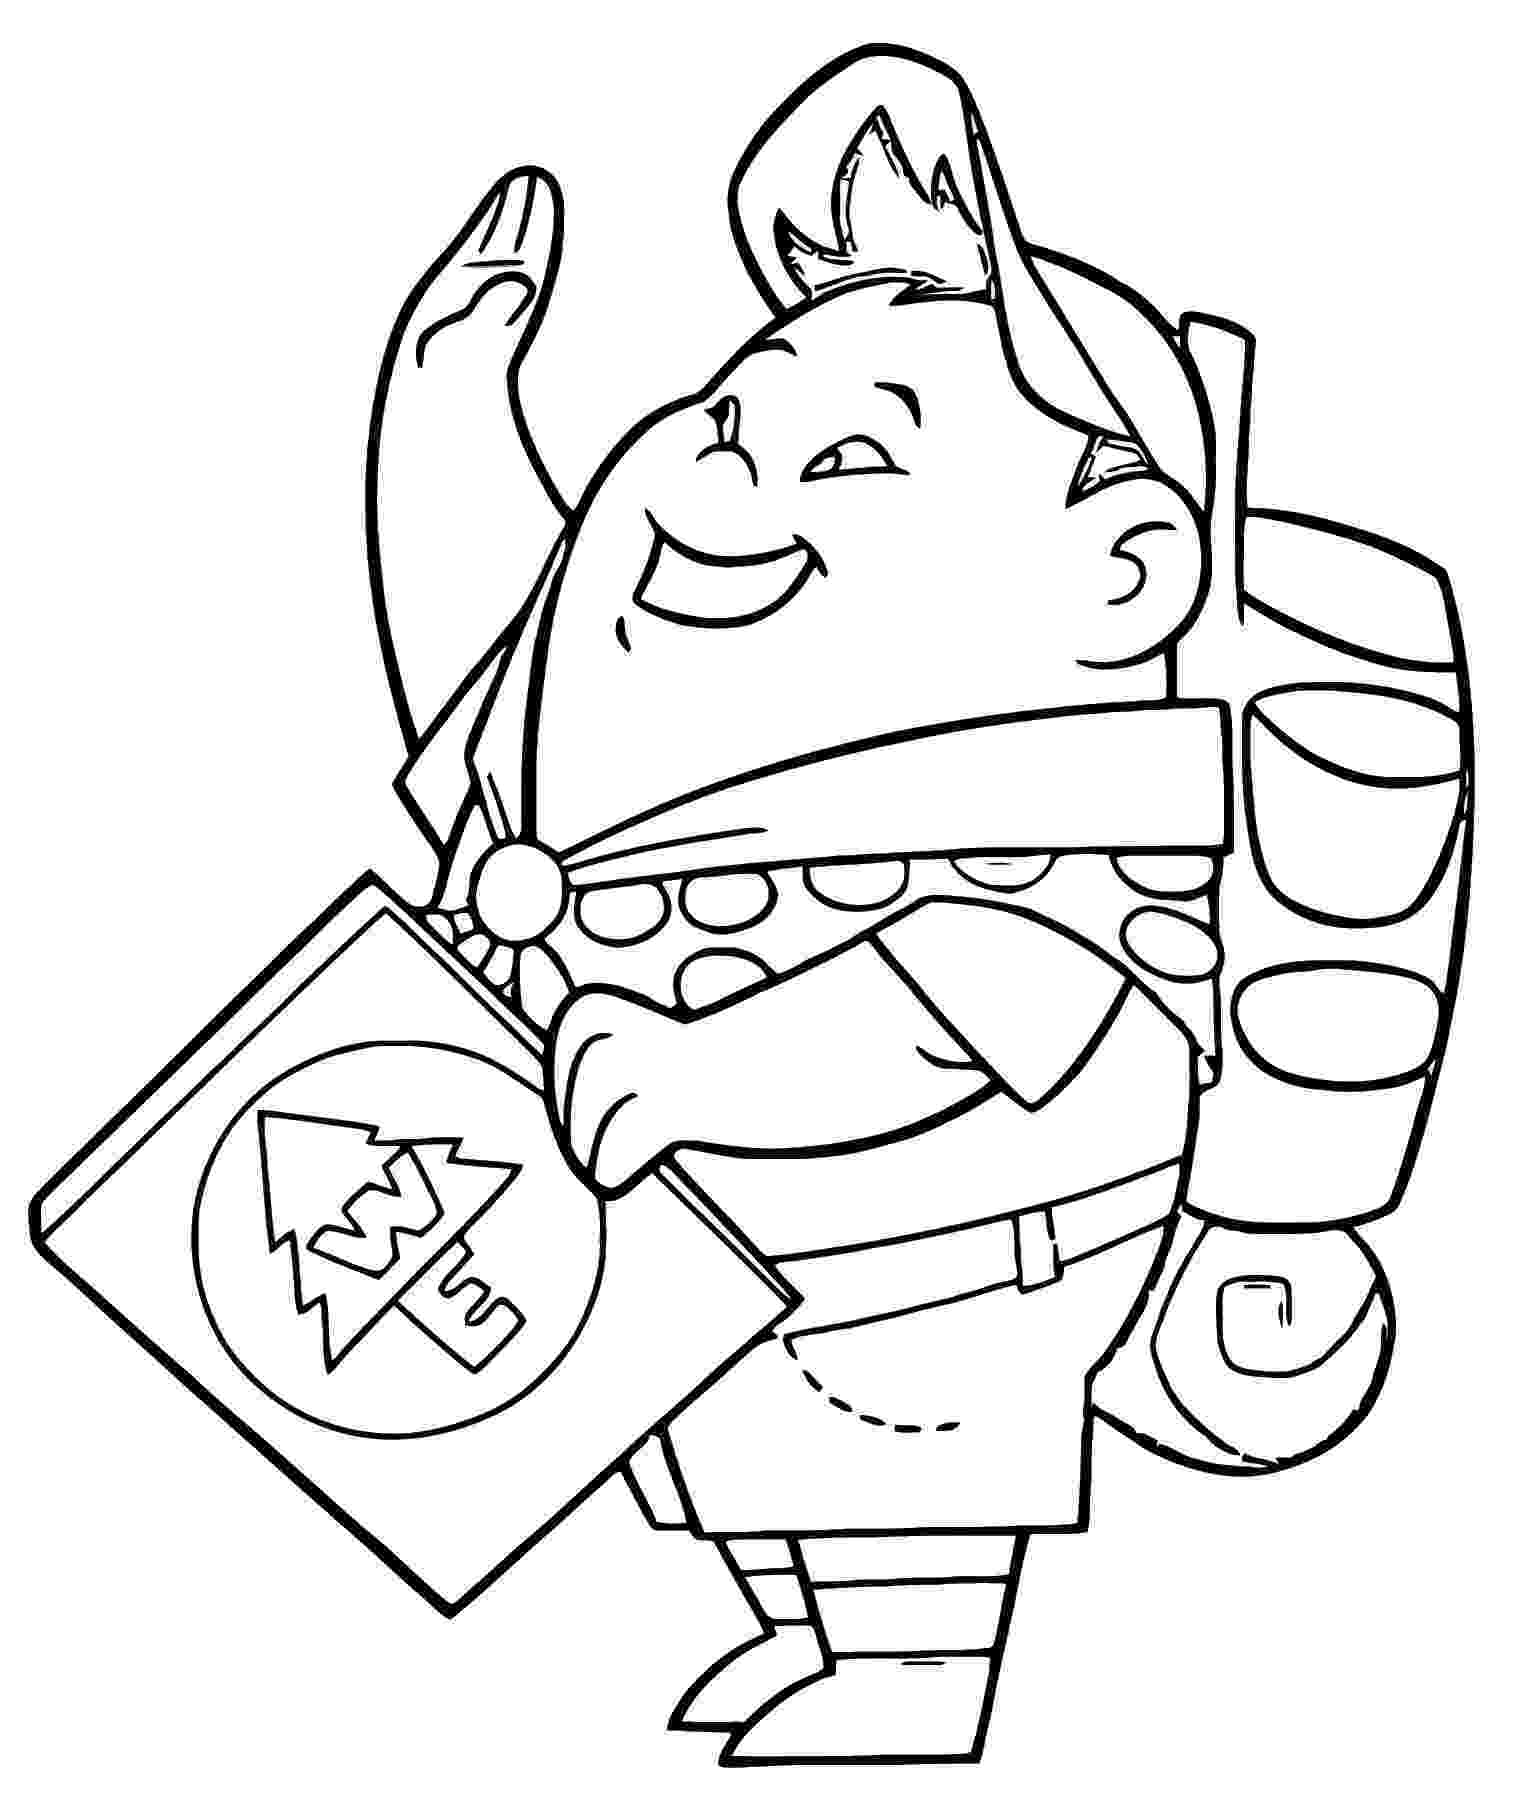 up coloring pages disney pixar up coloring pages 16 wecoloringpagecom up coloring pages